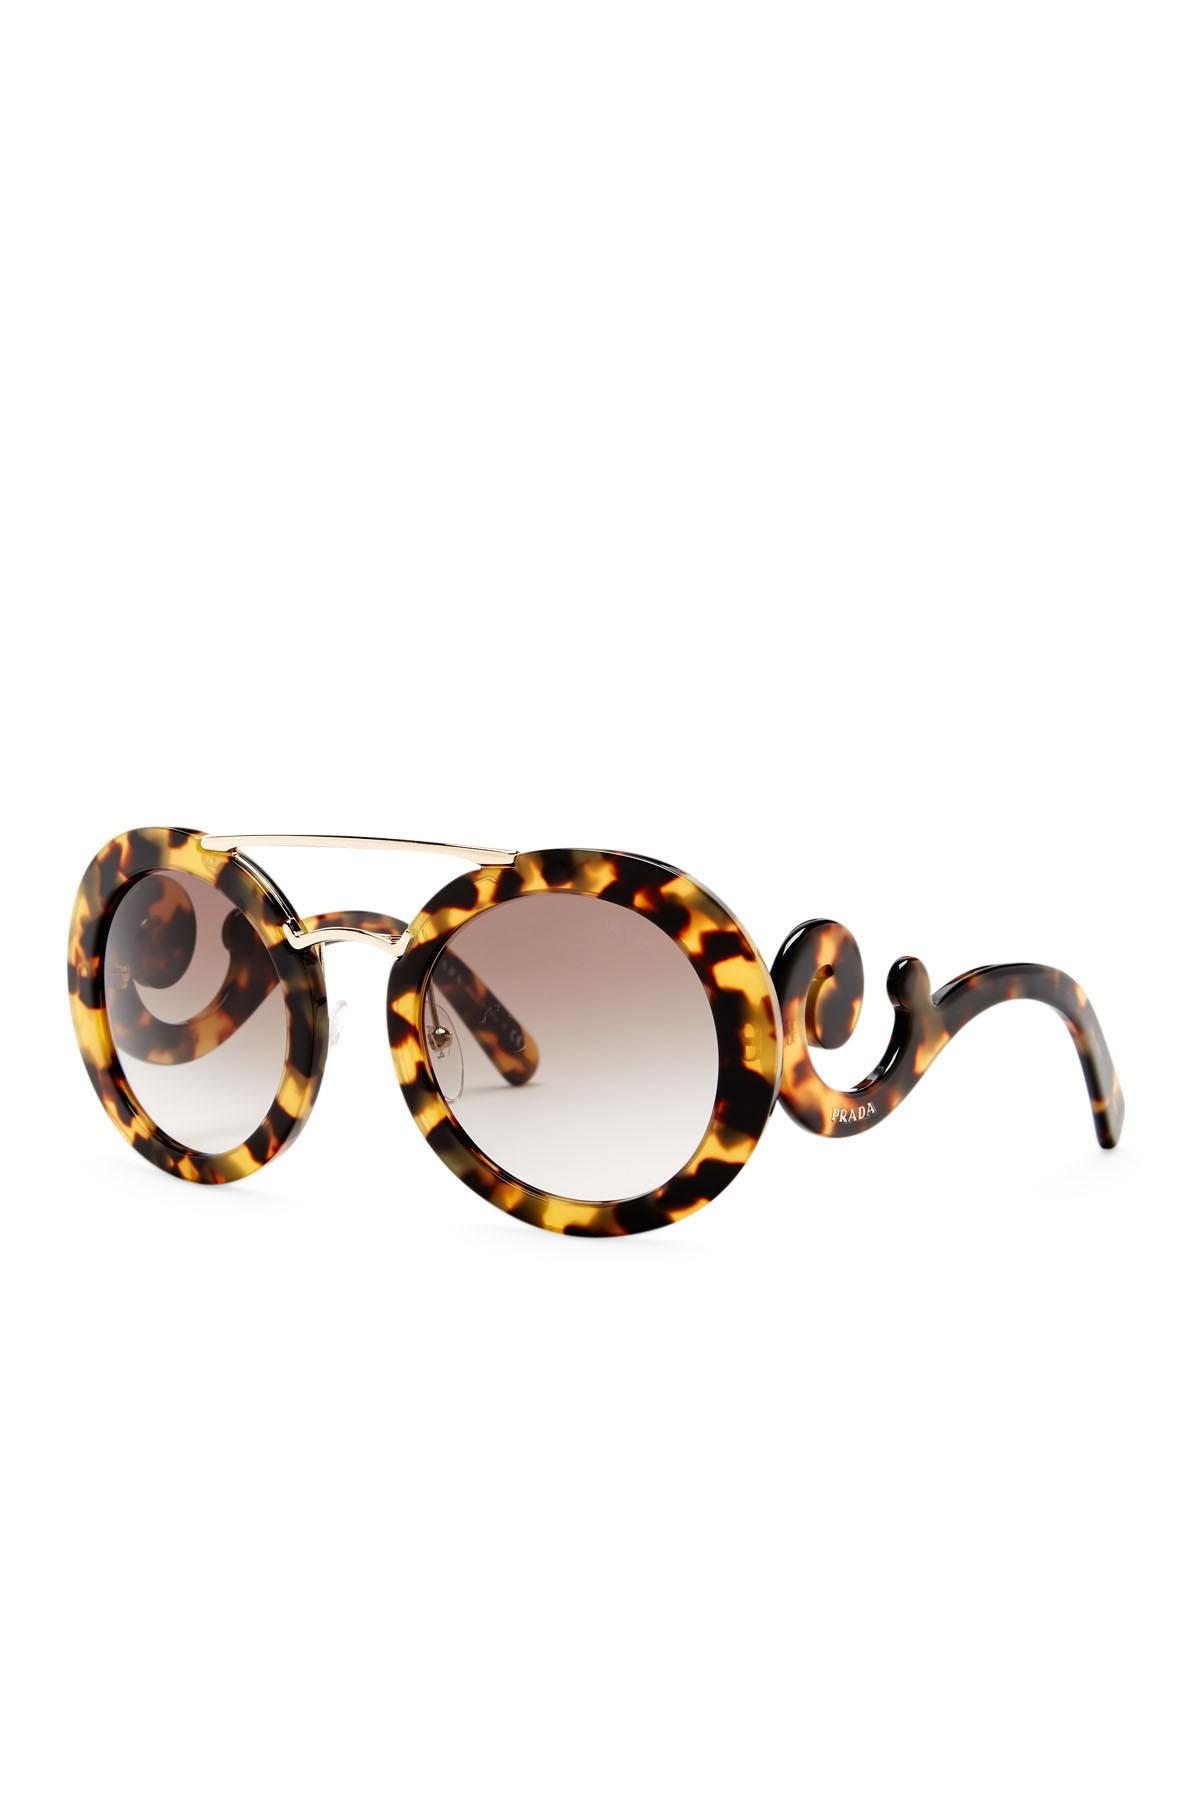 139b416eea ... new arrivals prada new prada absolute ornate baroque havana round  oversized sunglasses 70f81 33631